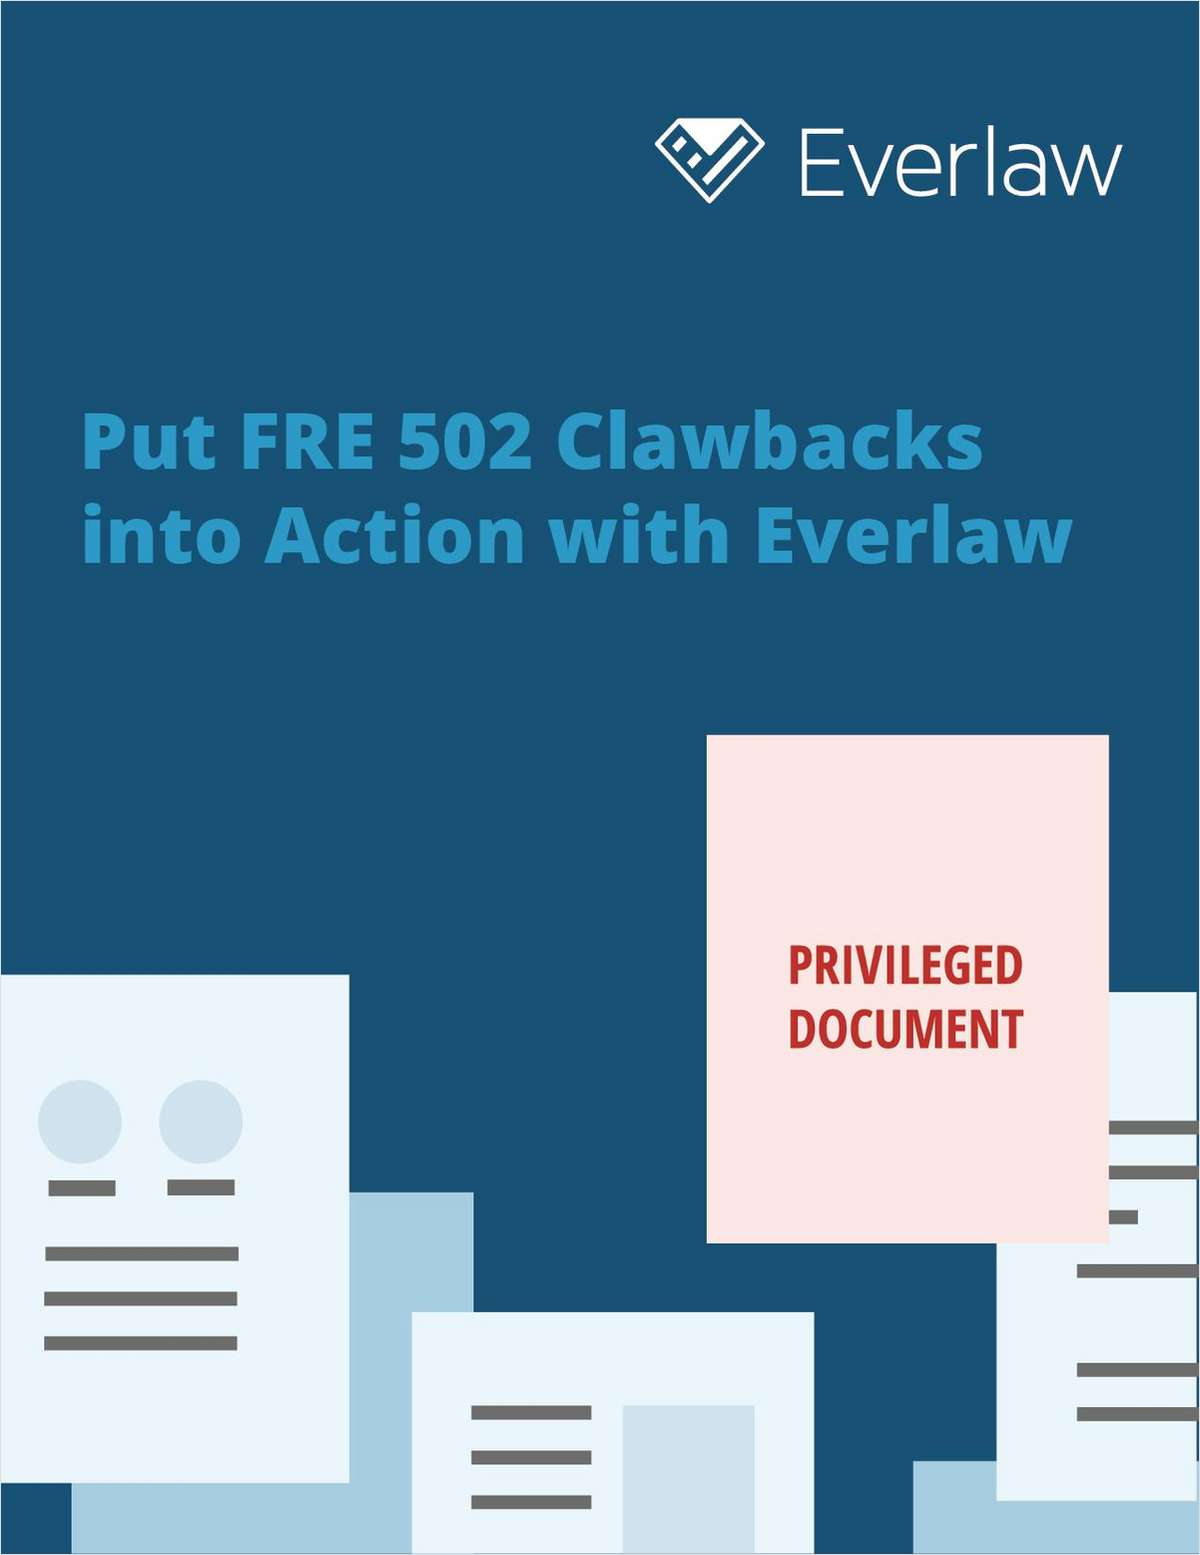 How to Make FRE Clawbacks Simple & Smart to Use